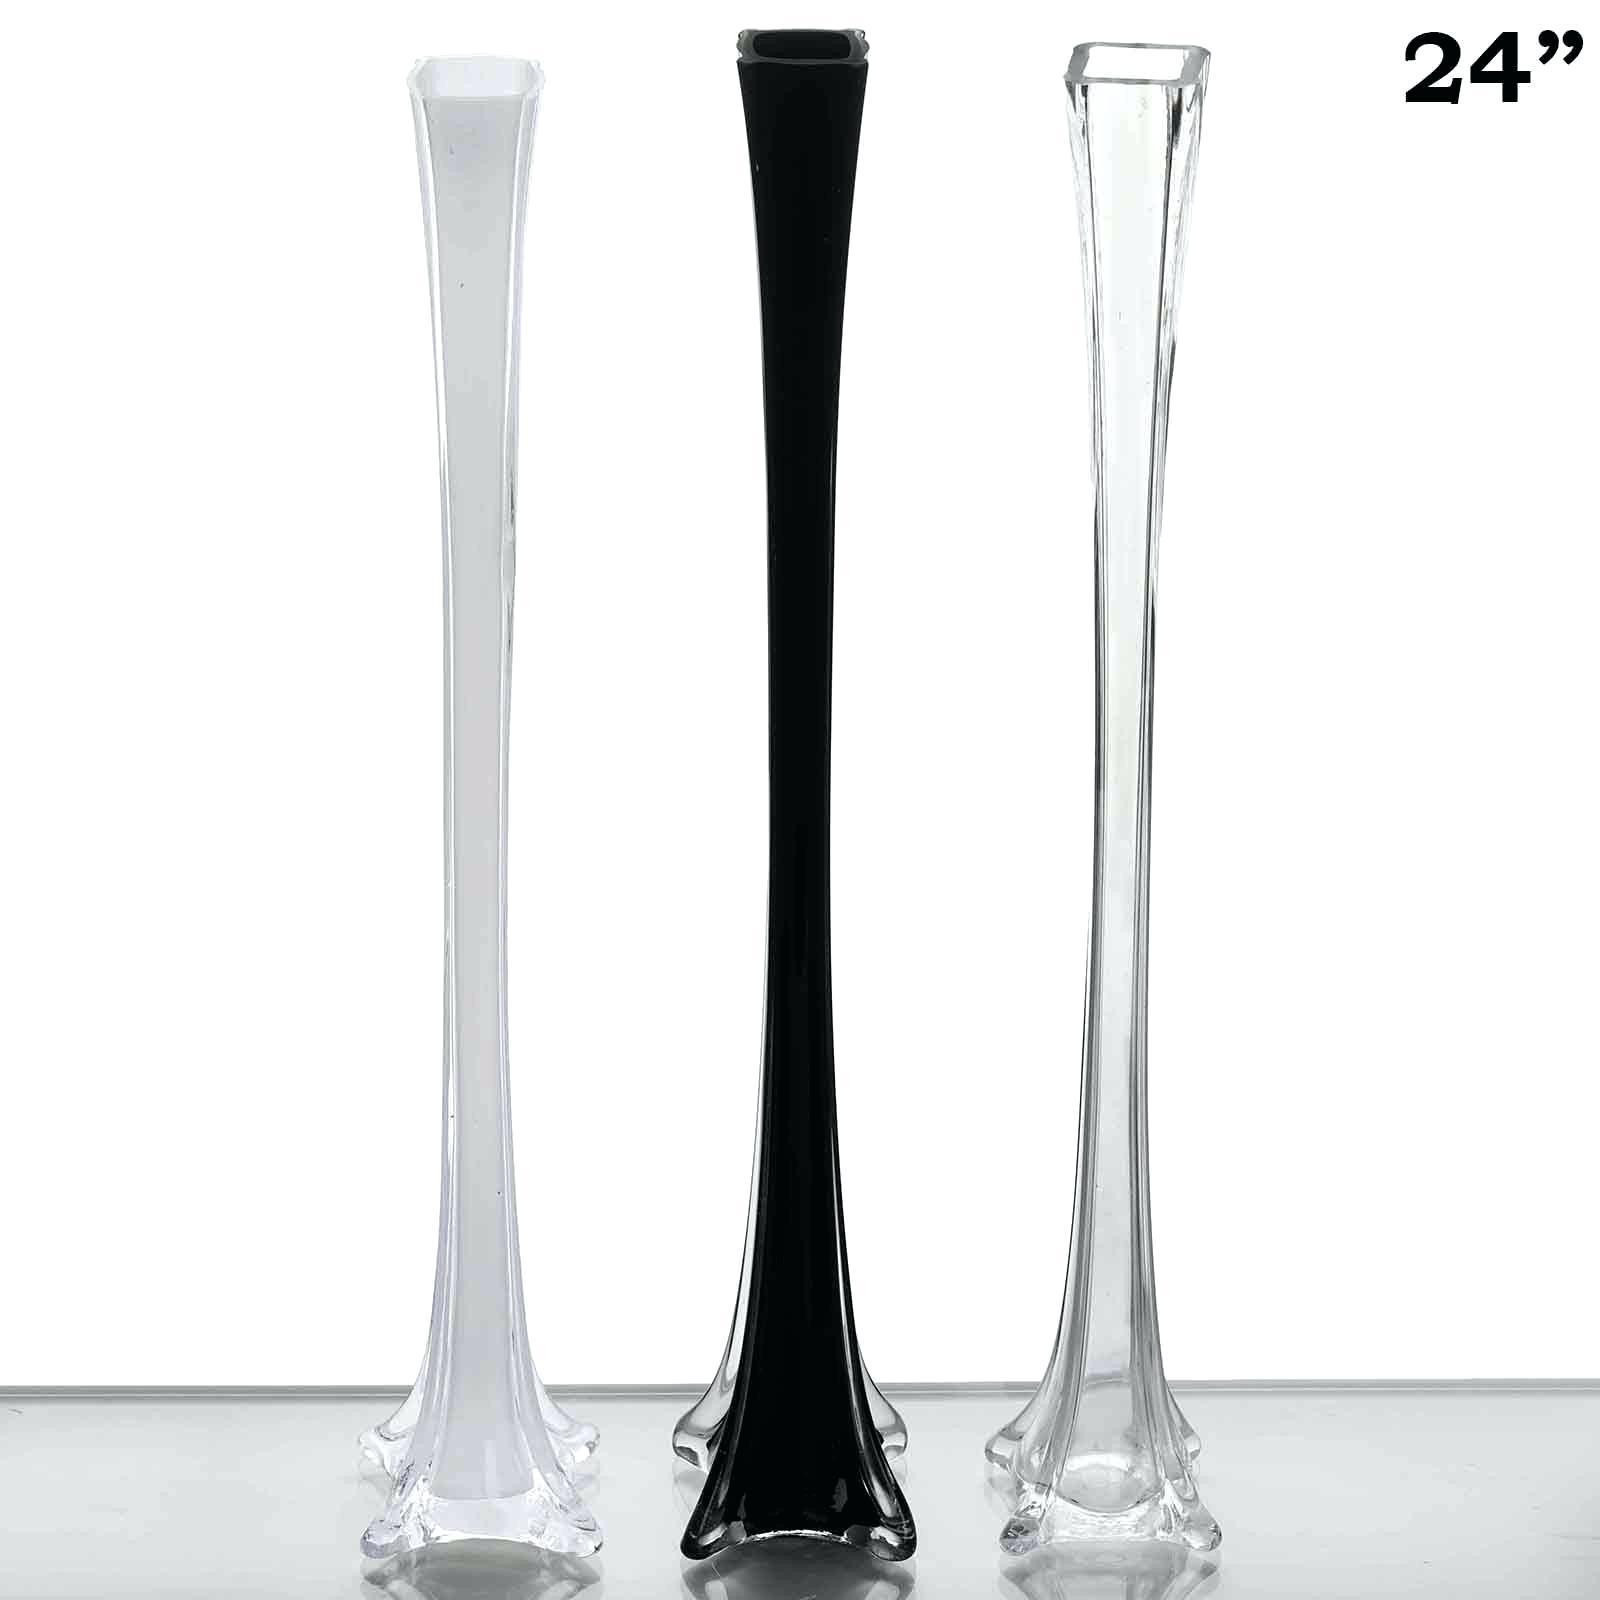 amethyst glass vase of black glass vases stock fantastic chair decor ideas from living room with regard to black glass vases stock fantastic chair decor ideas from living room vases wholesale awesome